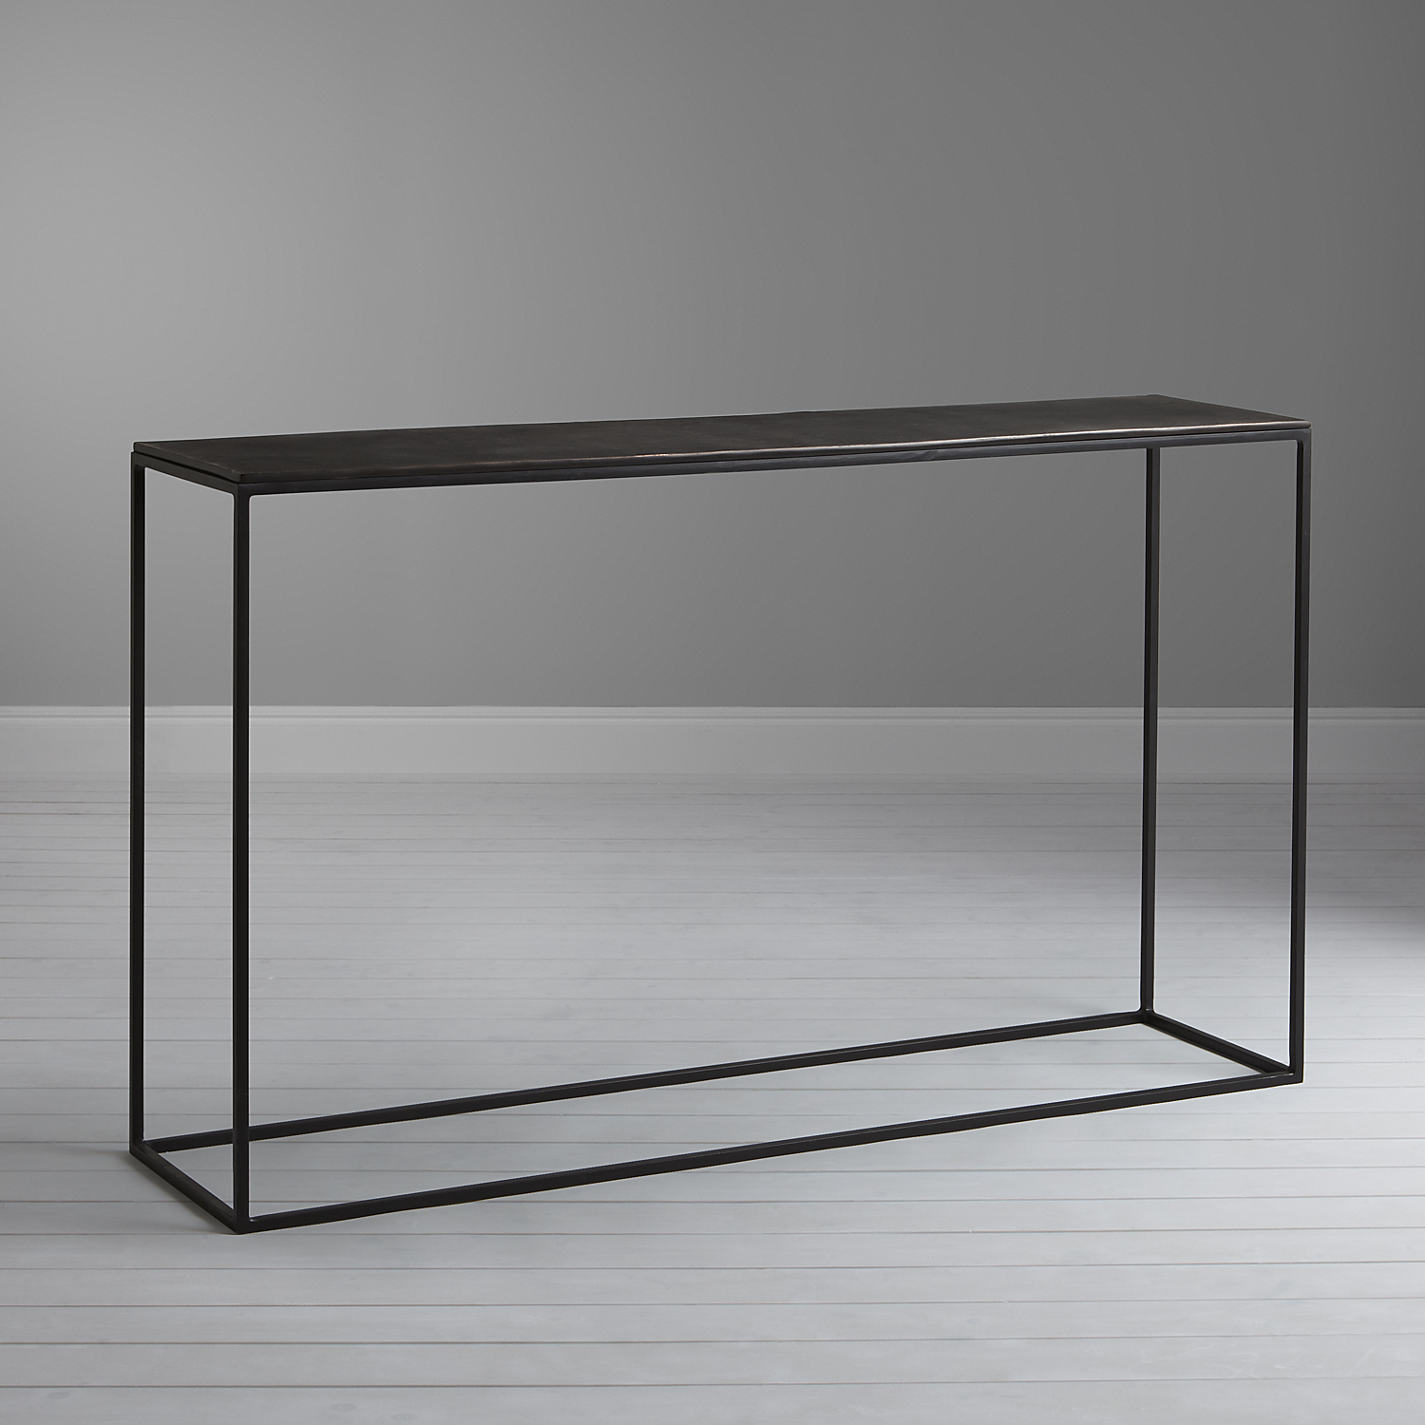 Buy content by terence conran fusion console table john lewis buy content by terence conran fusion console table online at johnlewis geotapseo Image collections